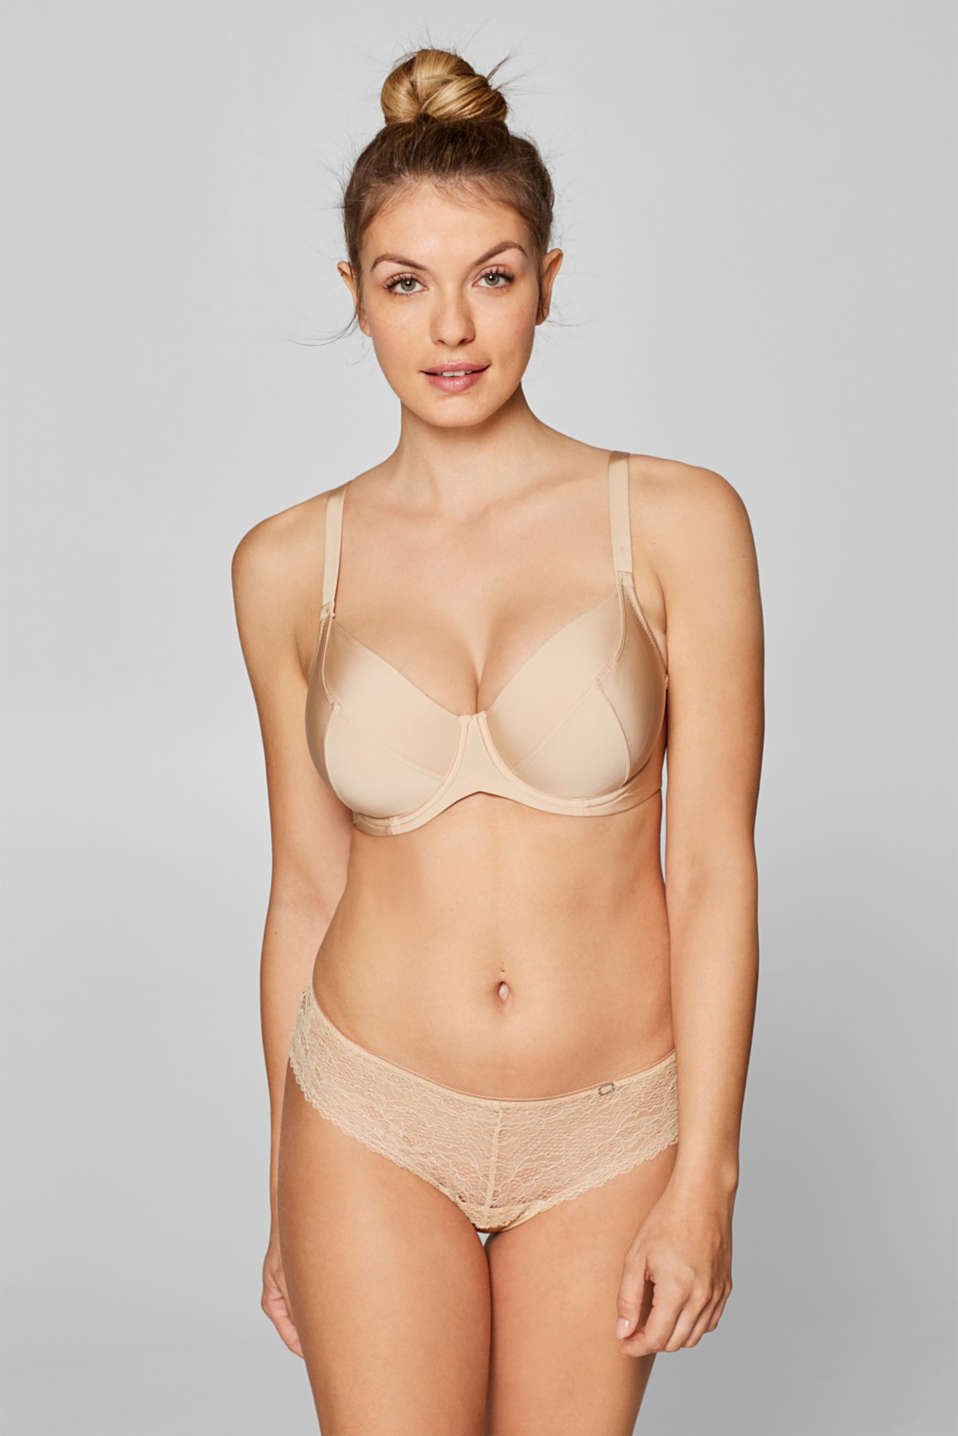 Esprit - Unpadded, basic underwire bra for large cups